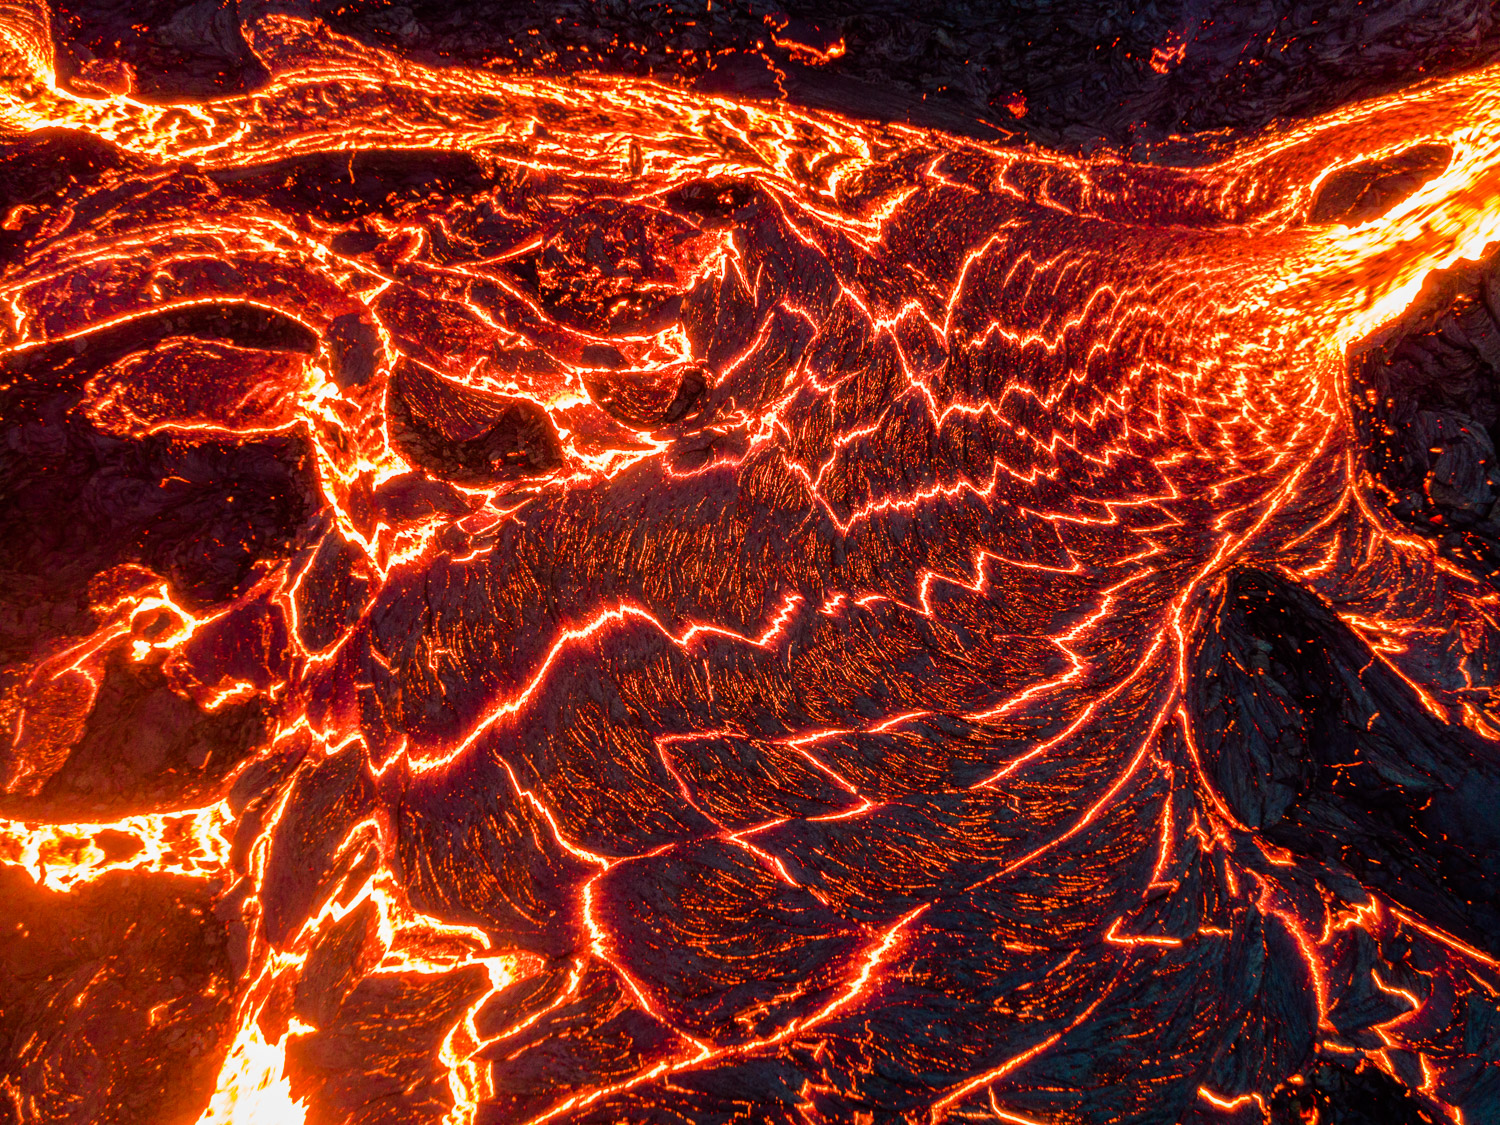 Molten lave from Fagradalsfjall Volcano on the Reykjanes Peninsula in Iceland.